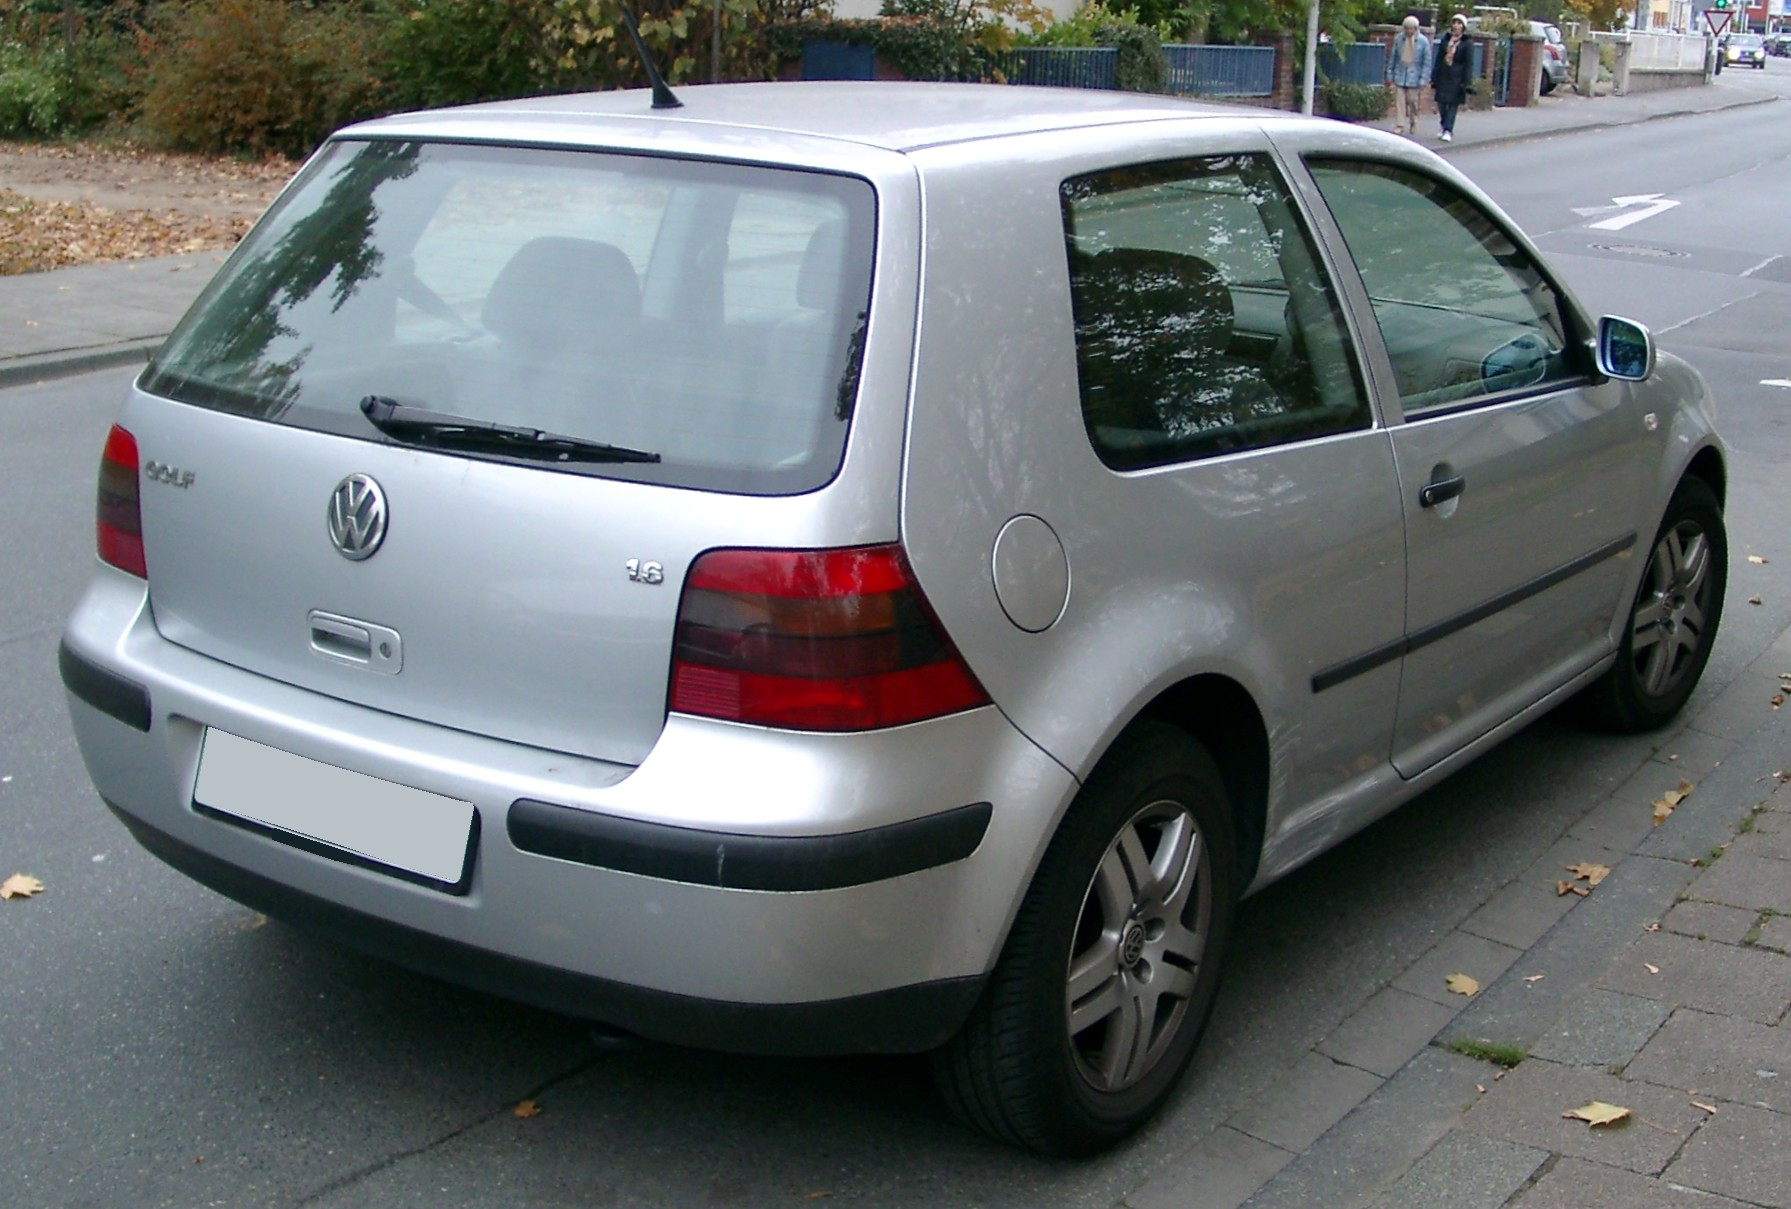 VW Golf 4 photo 01